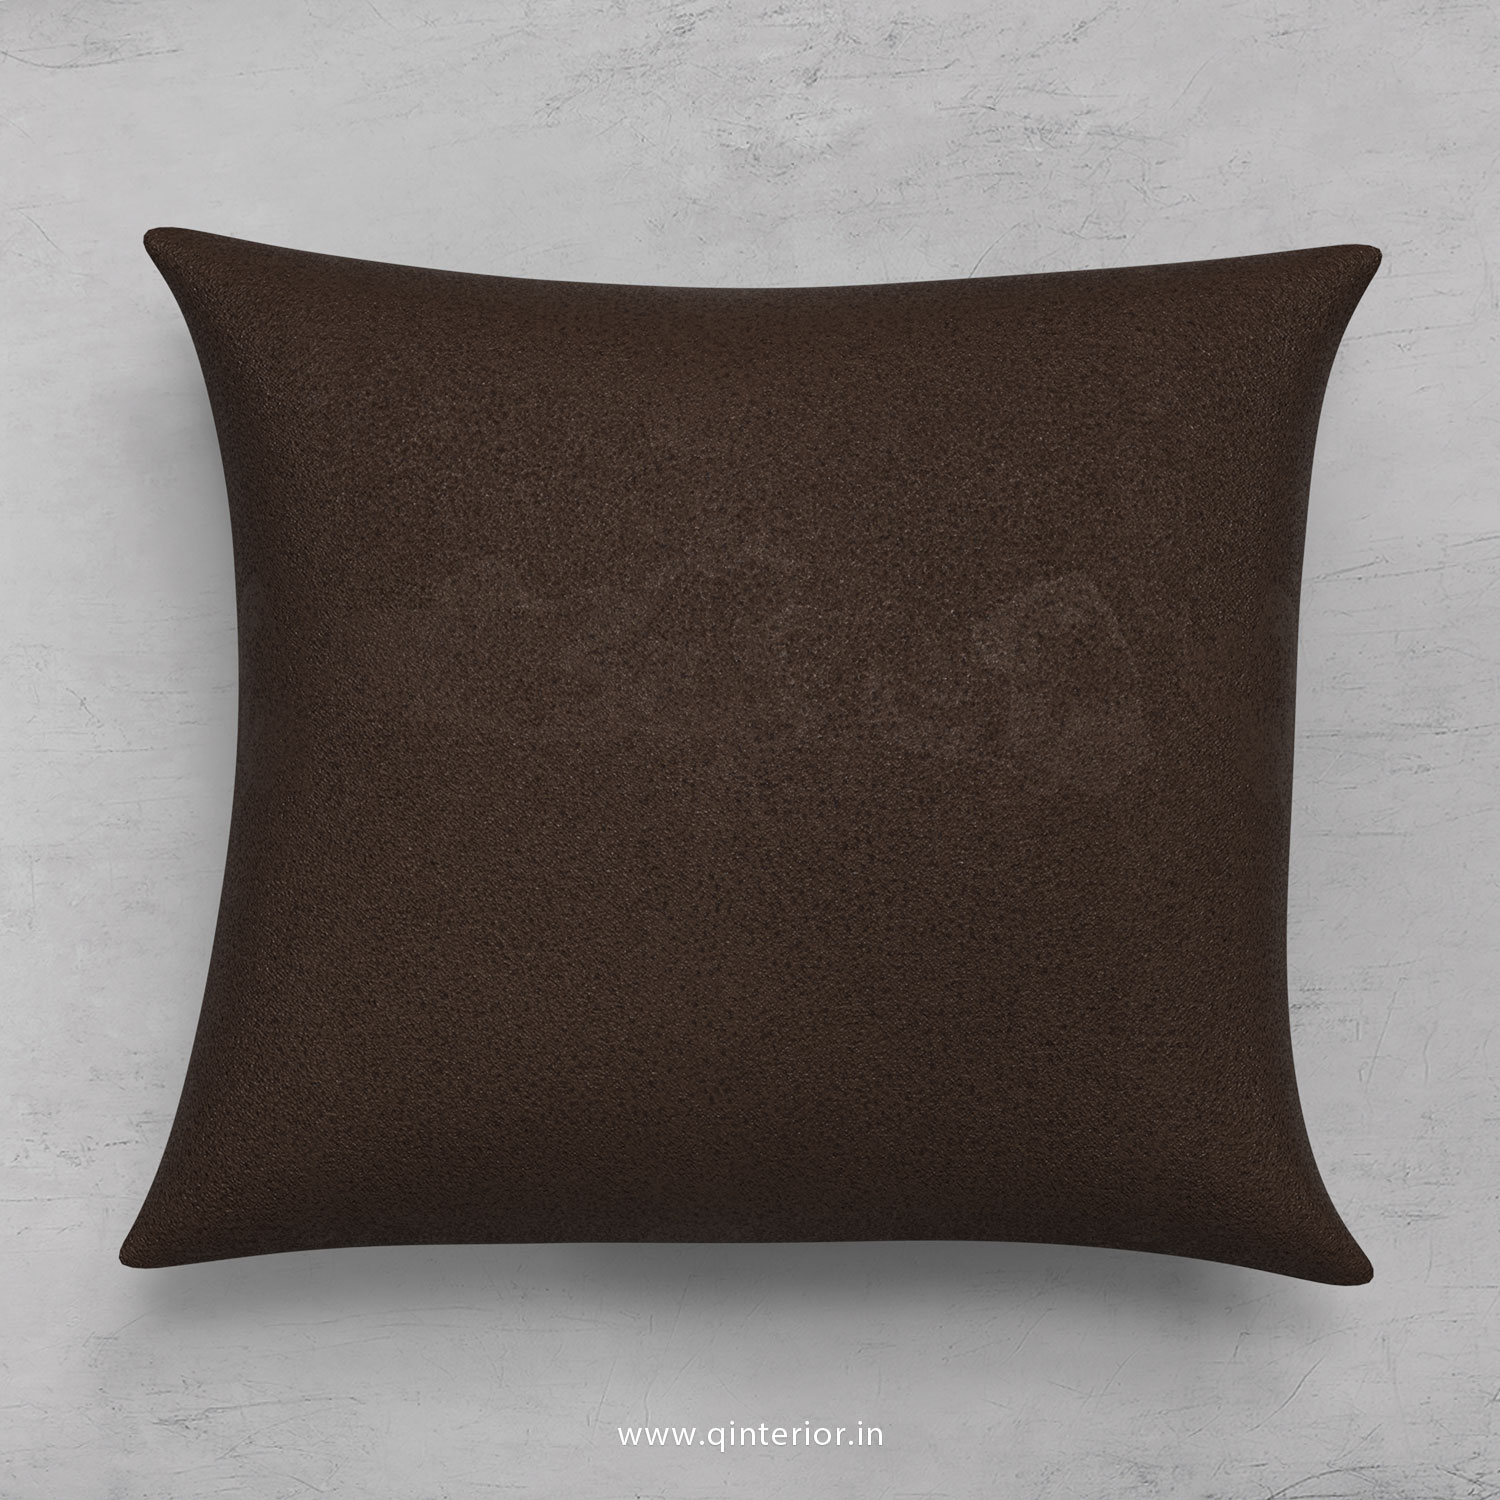 Cushion With Cushion Cover in Fab Leather- CUS001 FL16